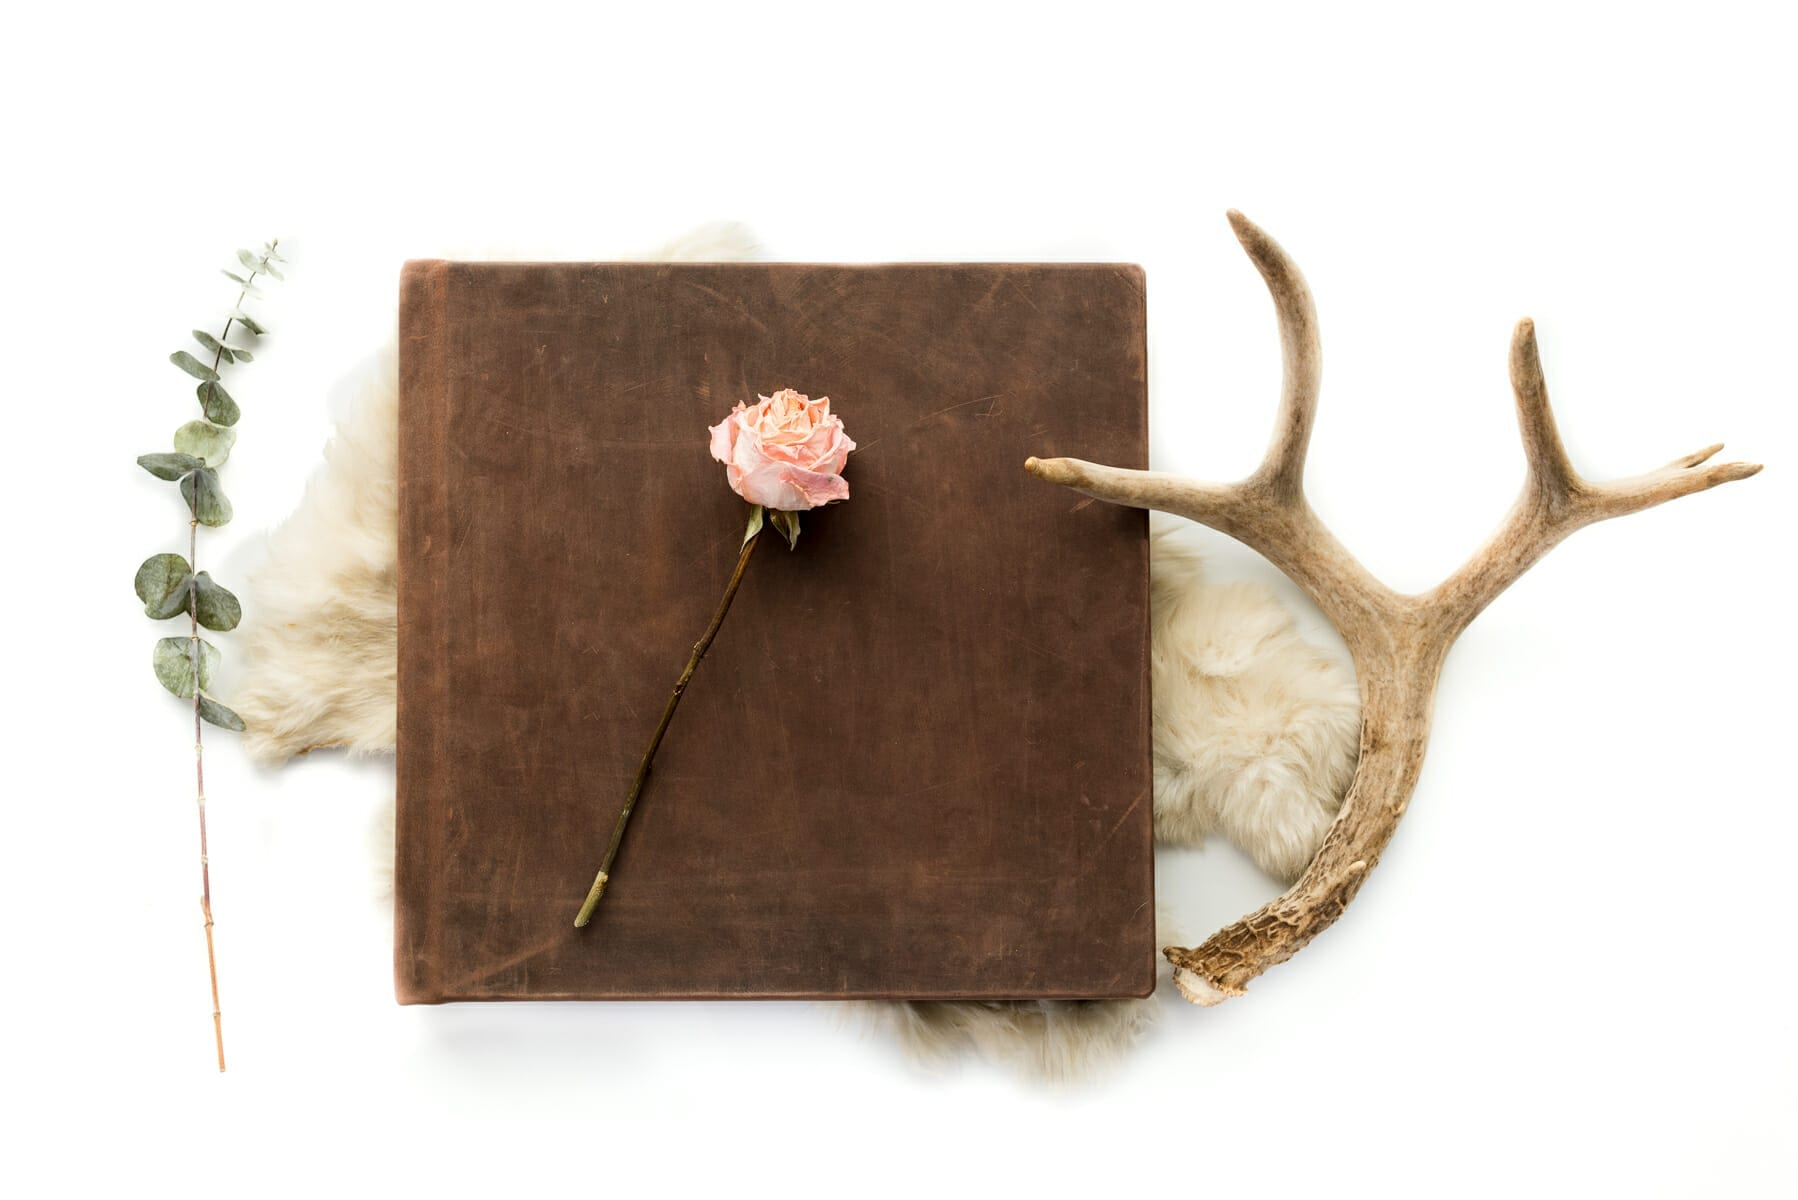 Leather cover - Custom wedding album design and printing service | From the Hip Photo